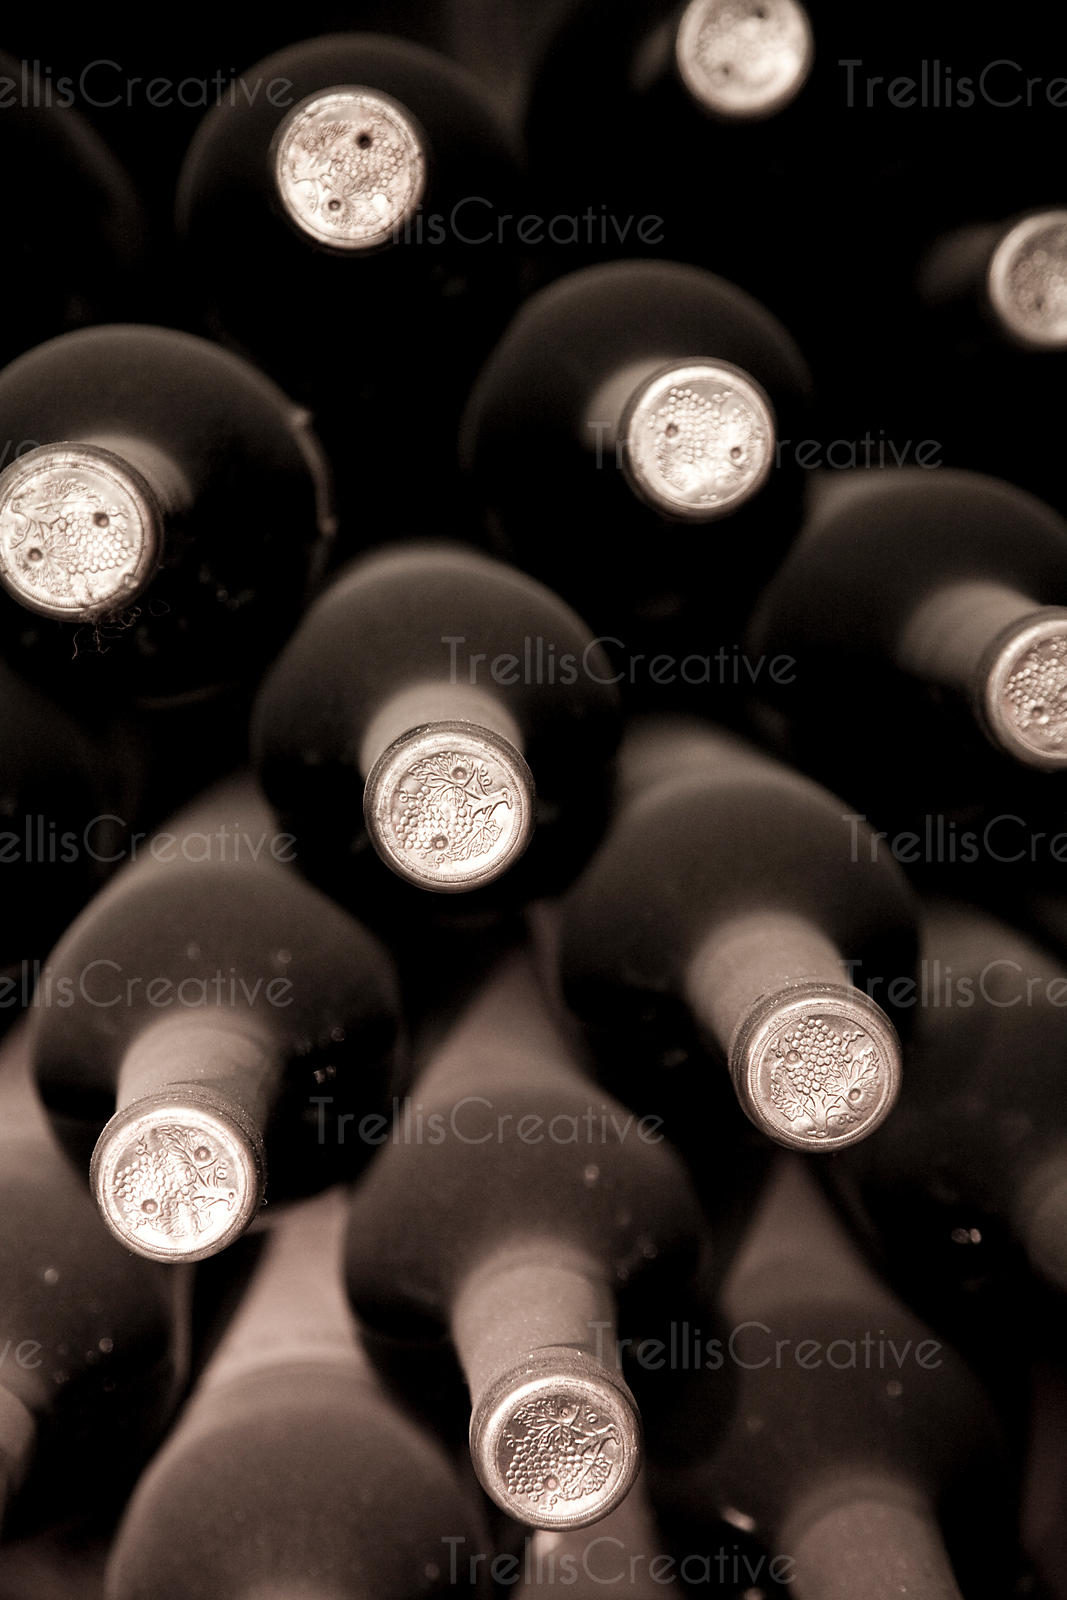 Dusty wine bottles ageing in a dark wine cellar